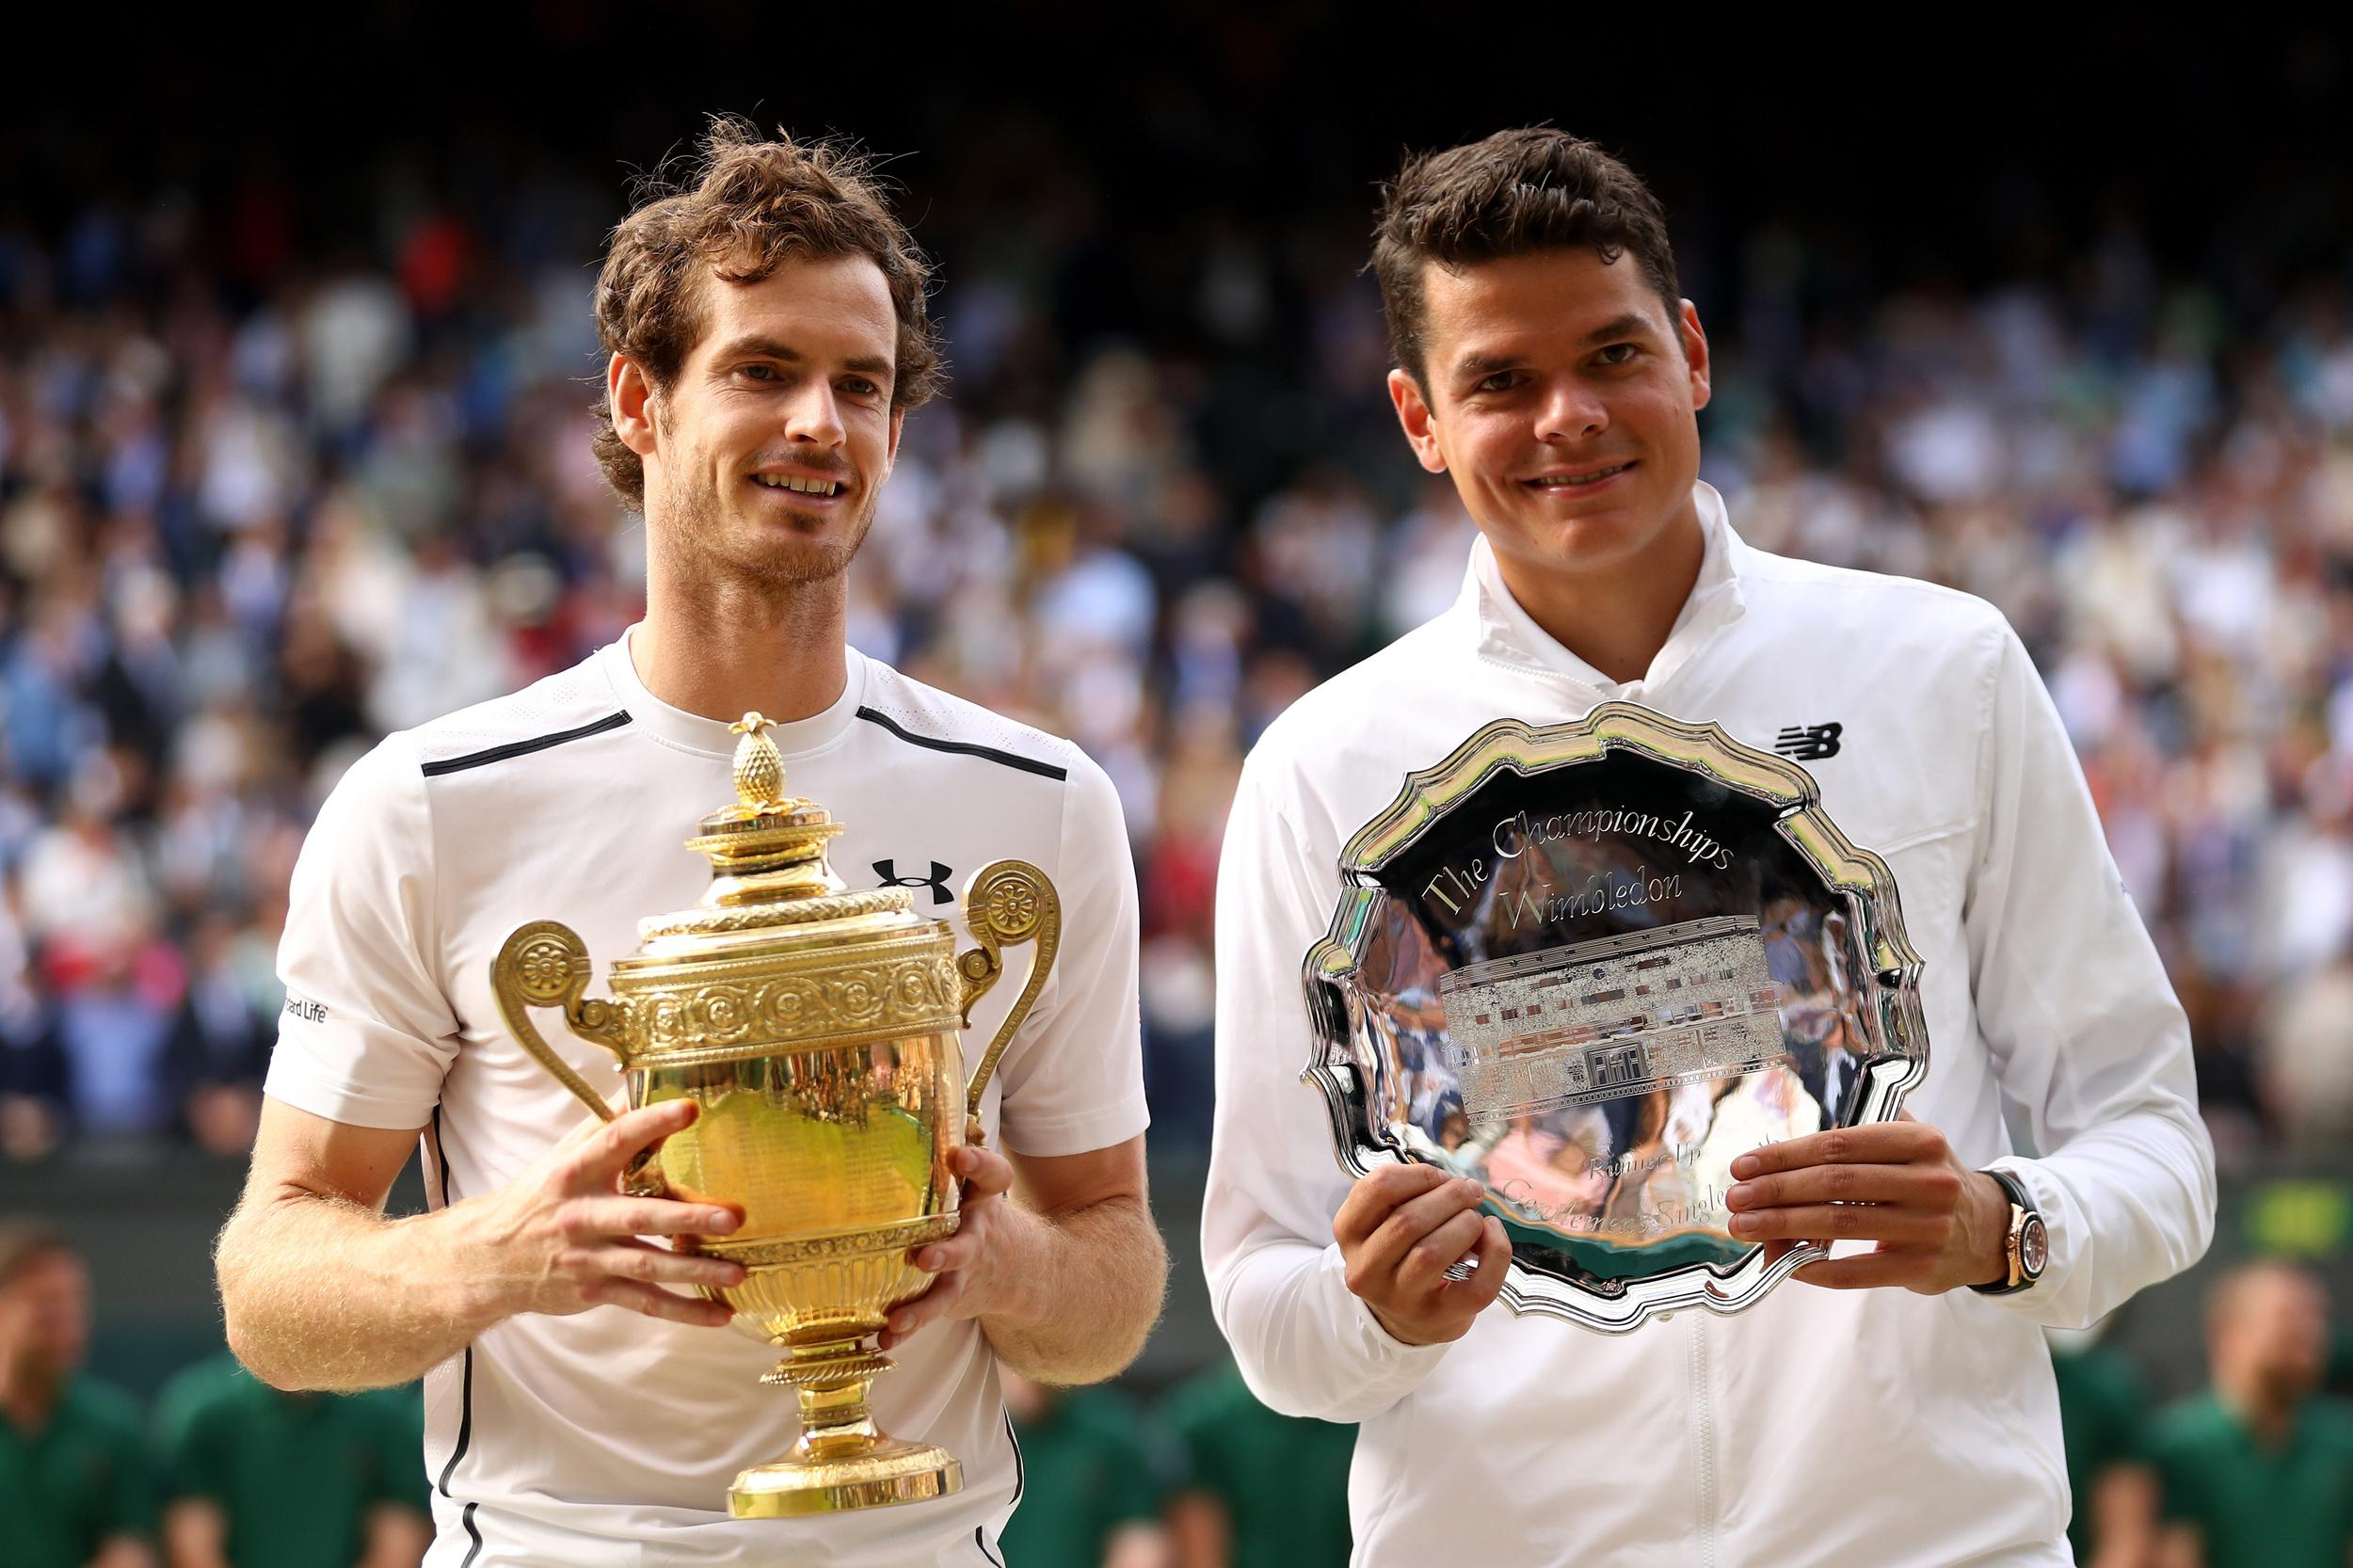 Andy Murray and Milos Raonic hold their trophies.